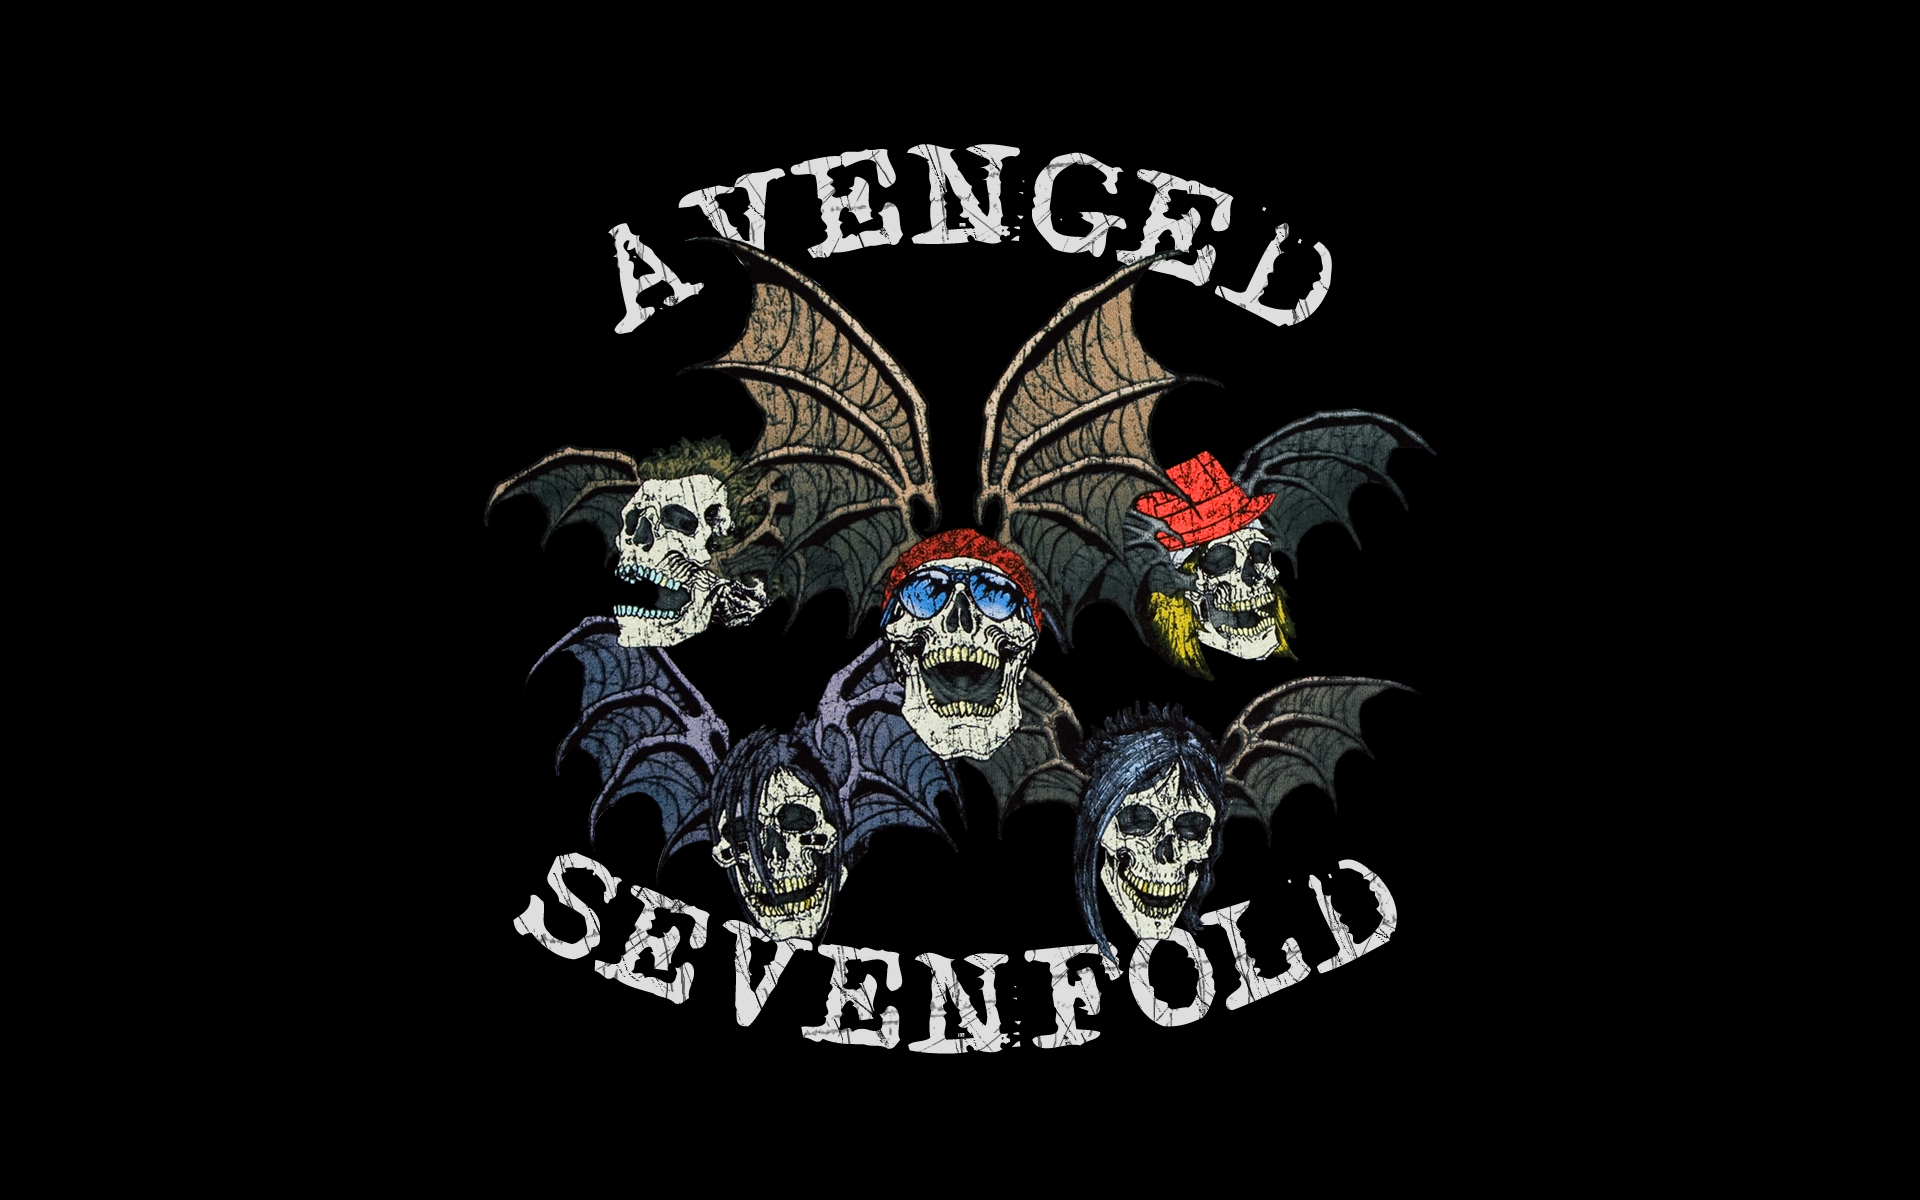 Avenged sevenfold full hd wallpaper and background image 1920x1200 music avenged sevenfold wallpaper voltagebd Images